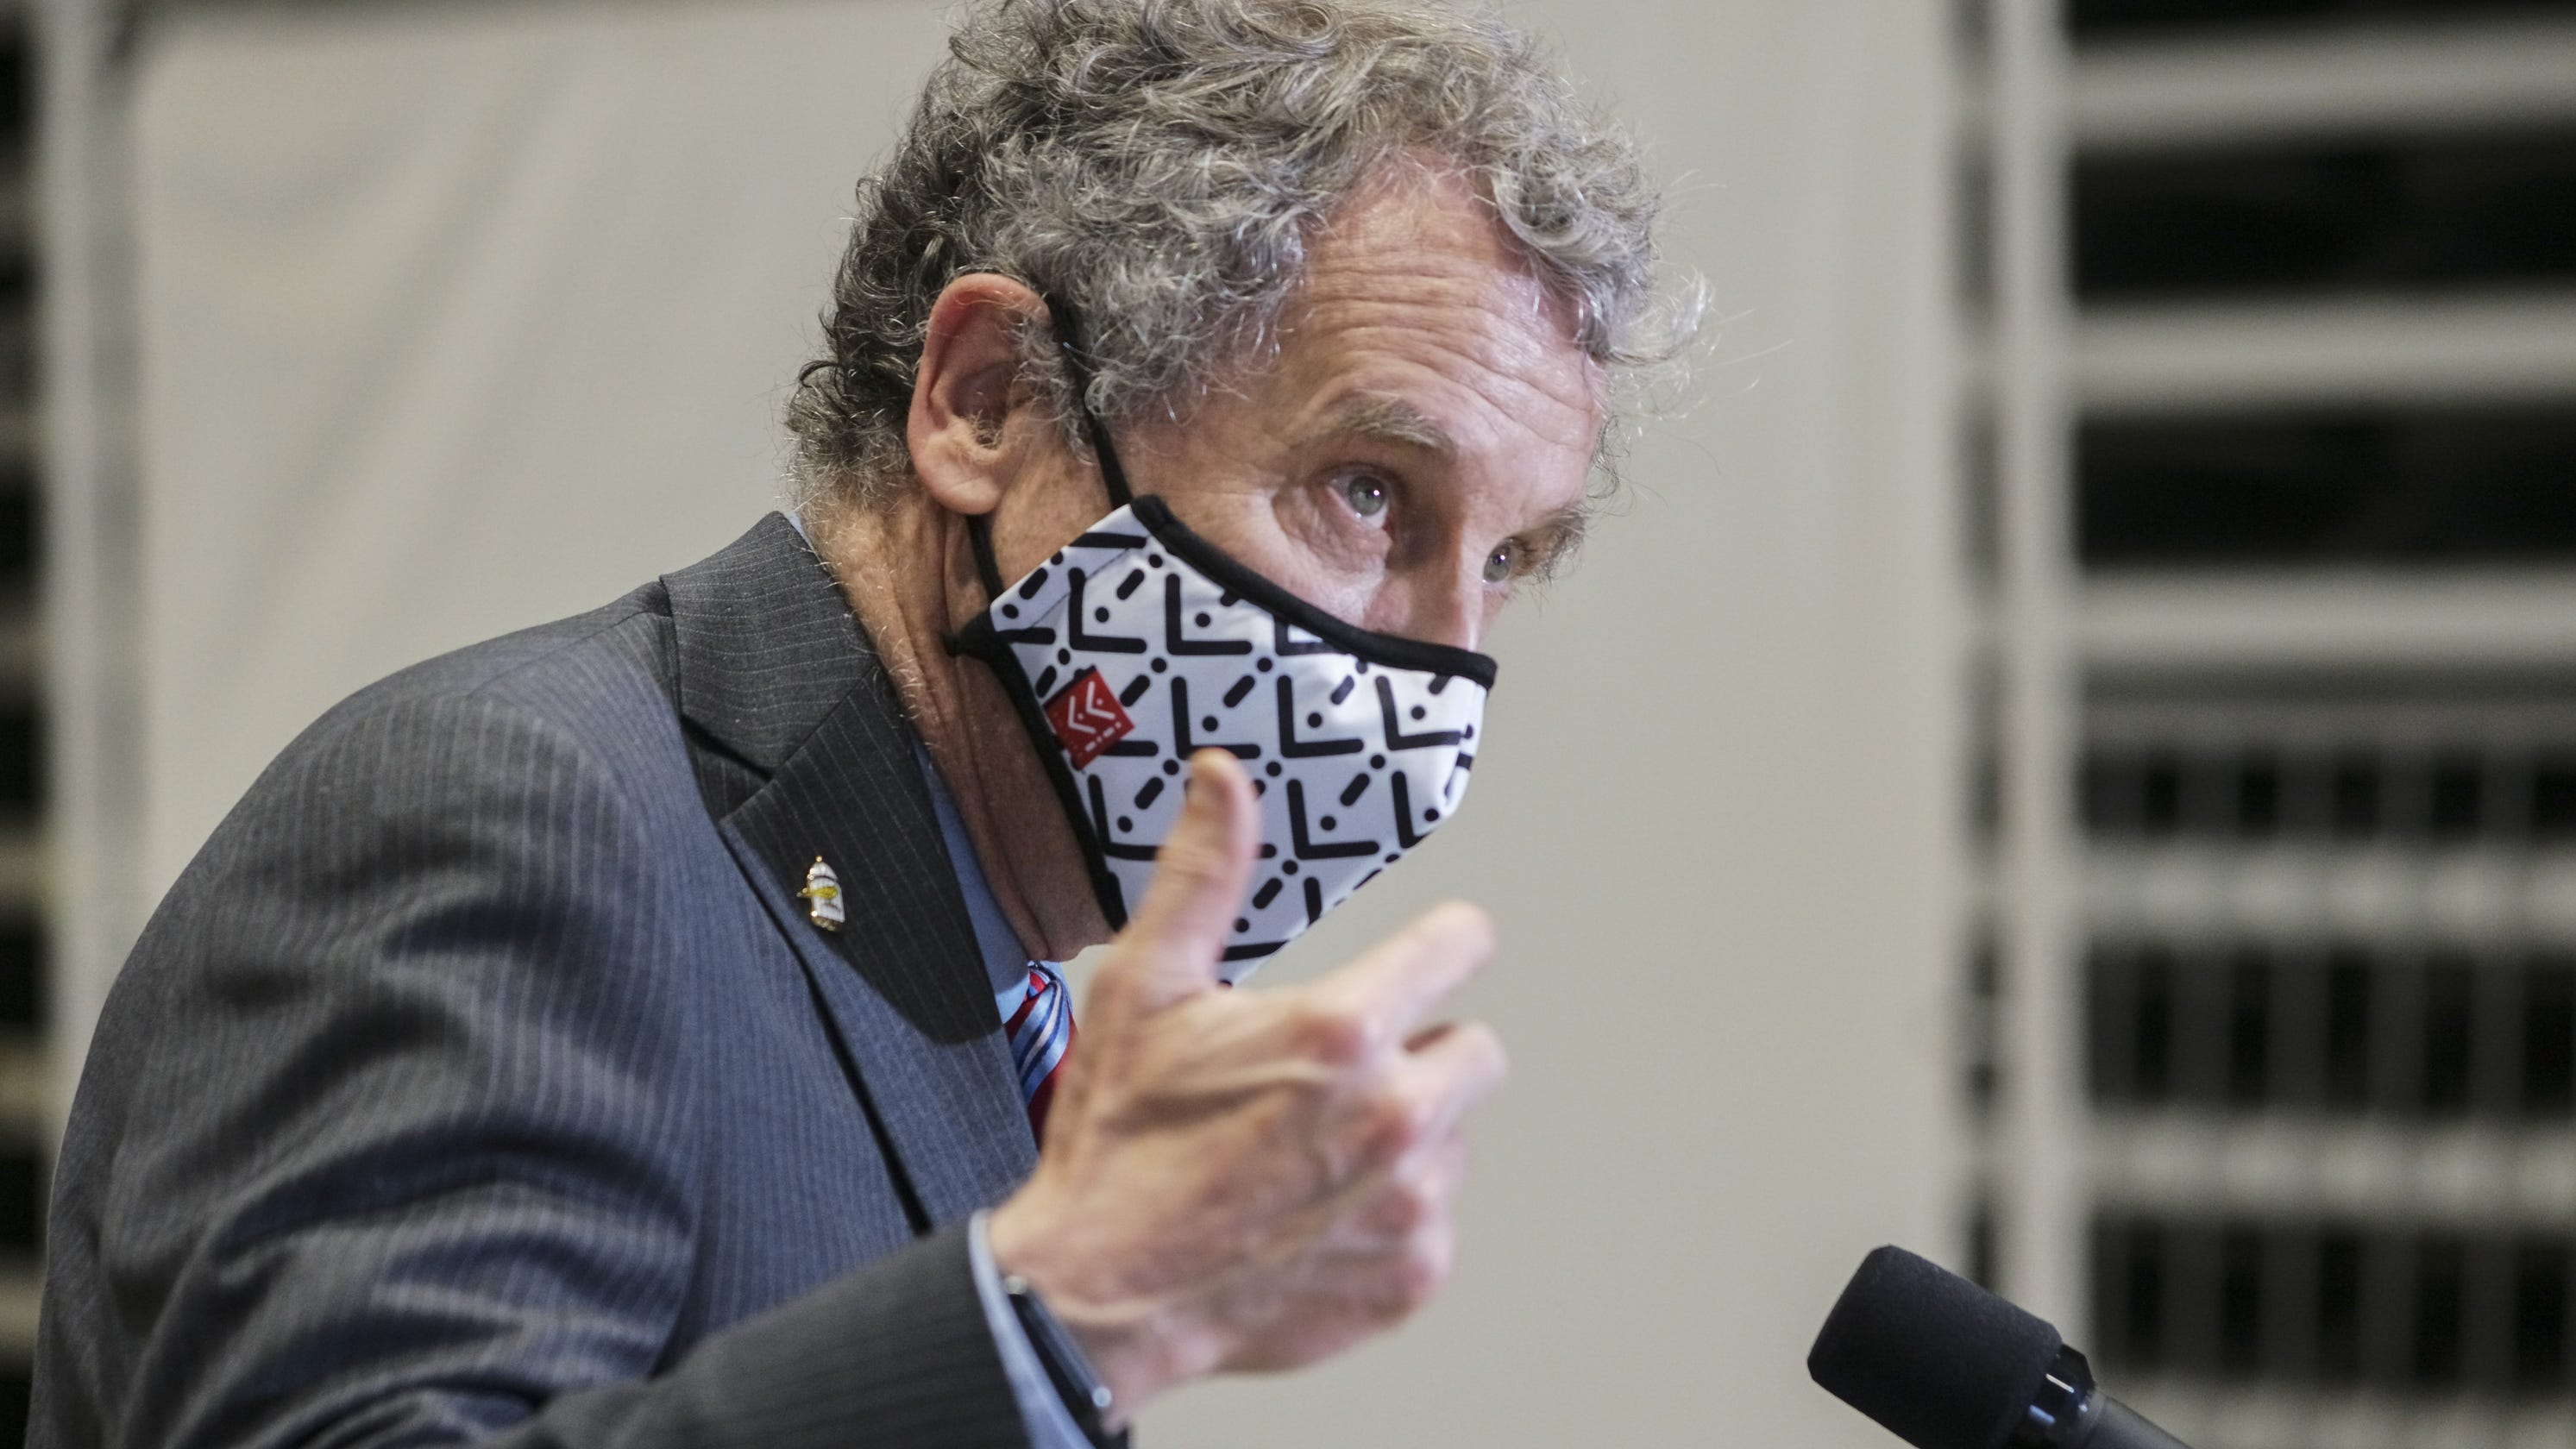 'Kind of a lunatic': Sen. Sherrod Brown calls out Sen. Rand Paul for not wearing a mask